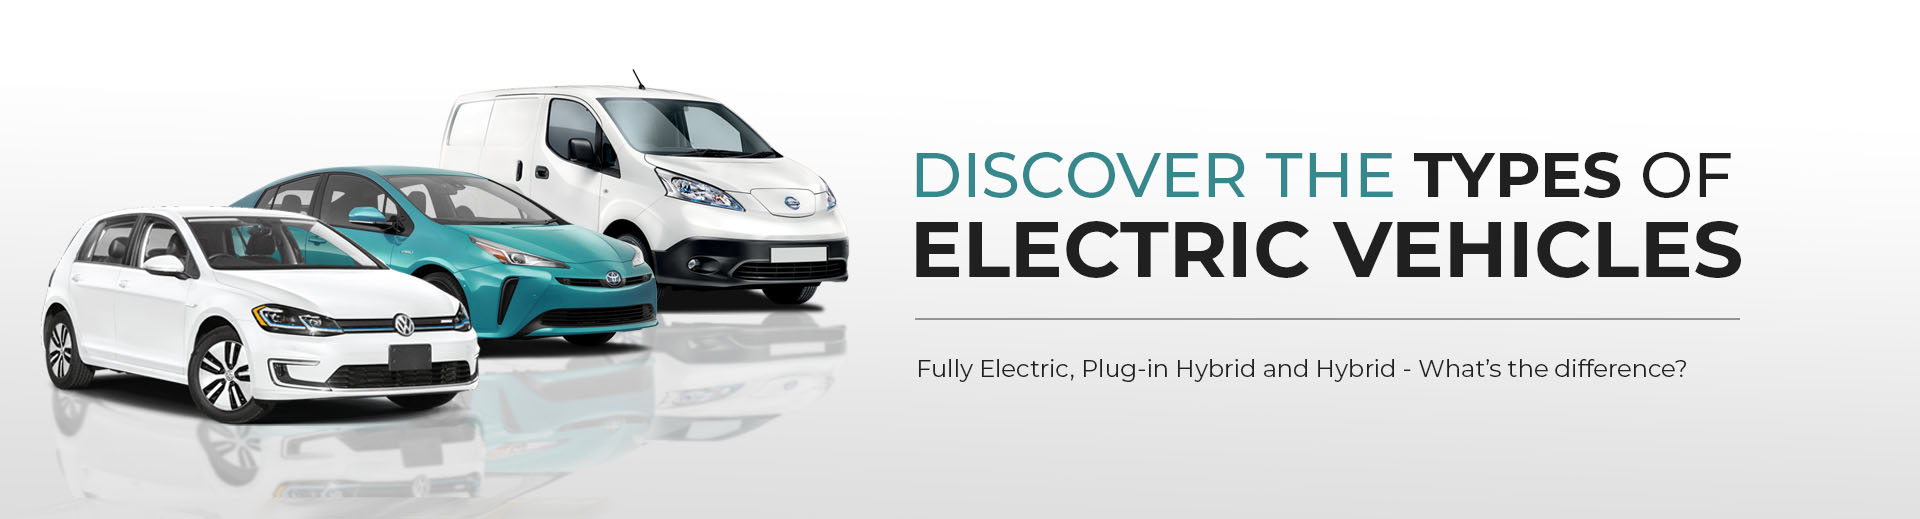 Discover the Types of Electric Vehicles